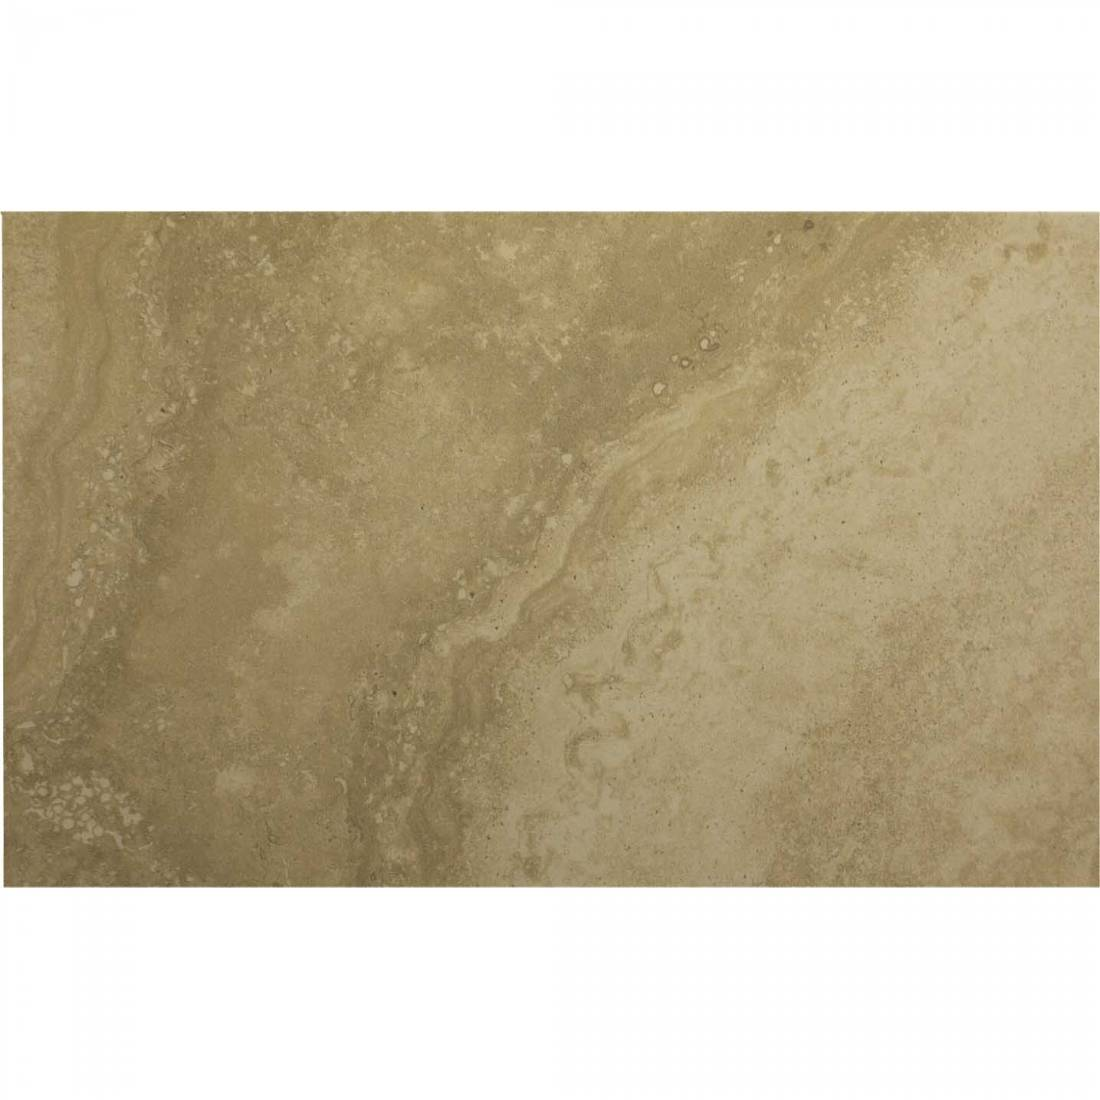 Country 25x40 Beige 1